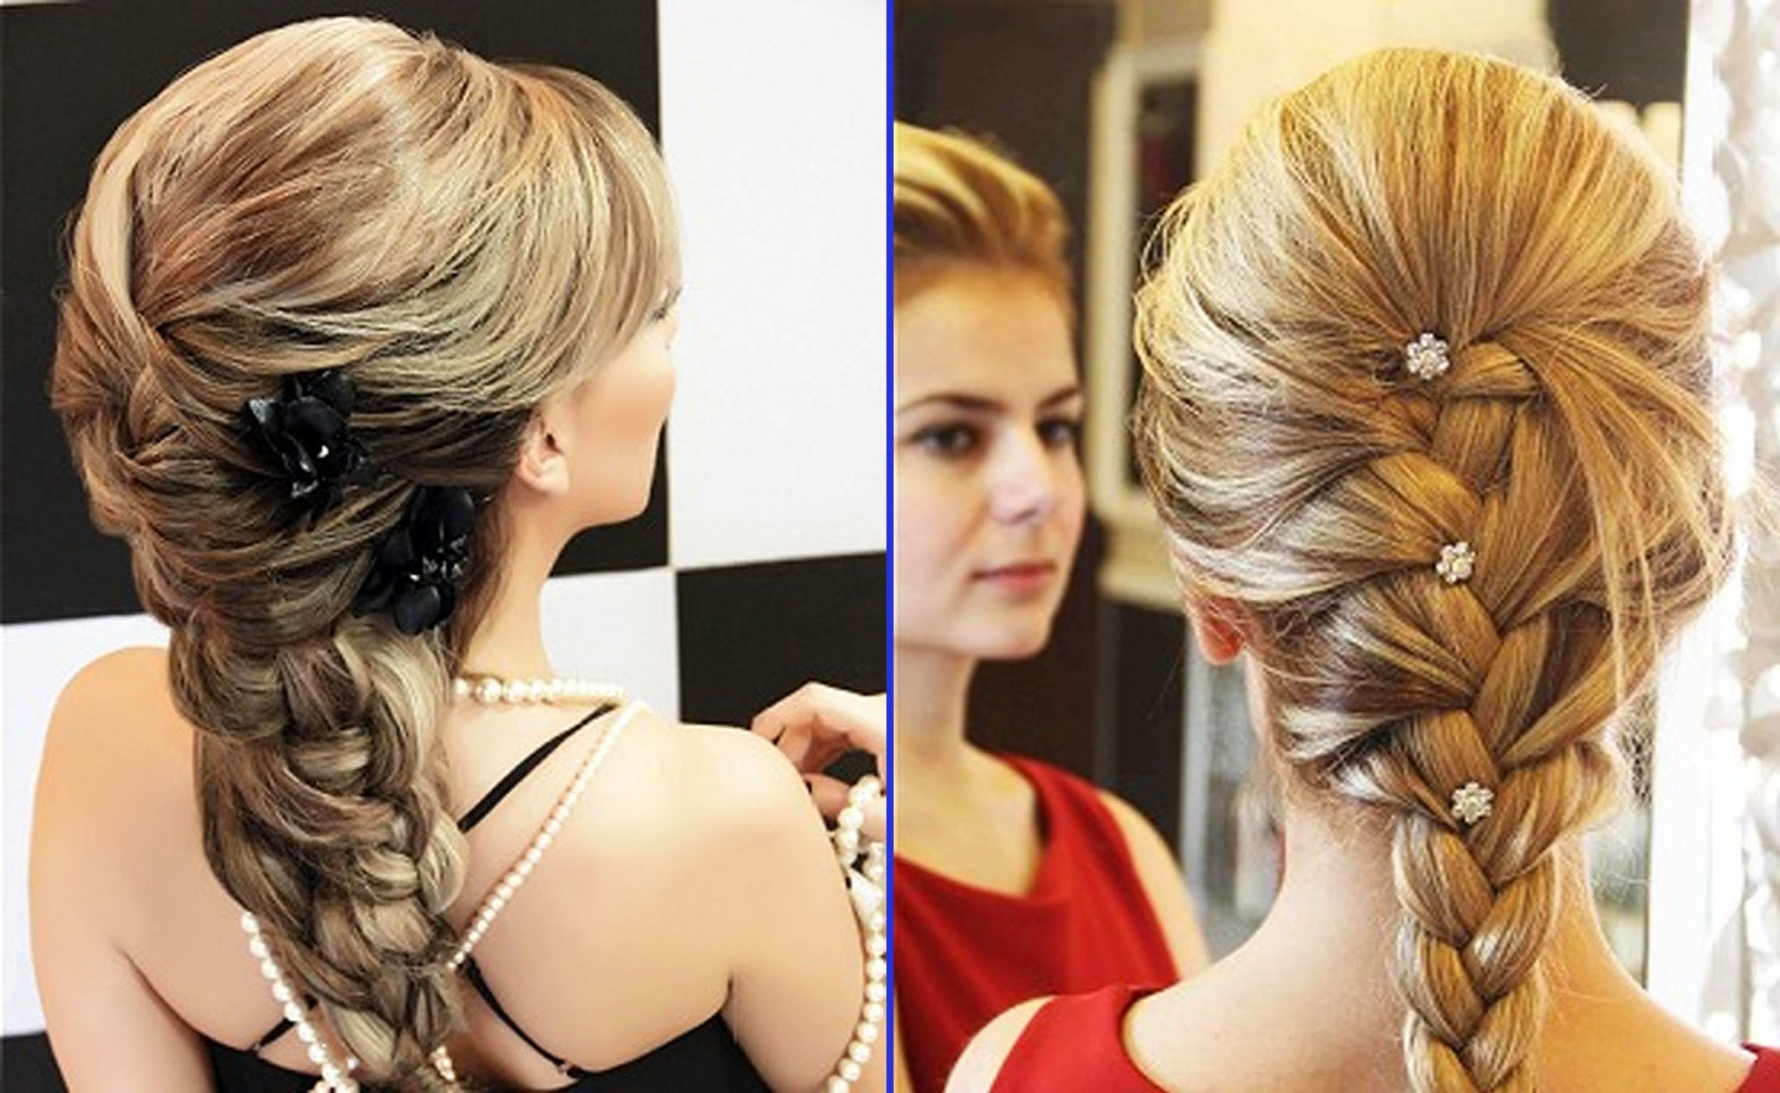 2018 Wedding Updos For Long Hair With Braids For Braided Hairstyles For Long Hair Wedding – Hairstyle For Women & Man (View 3 of 15)